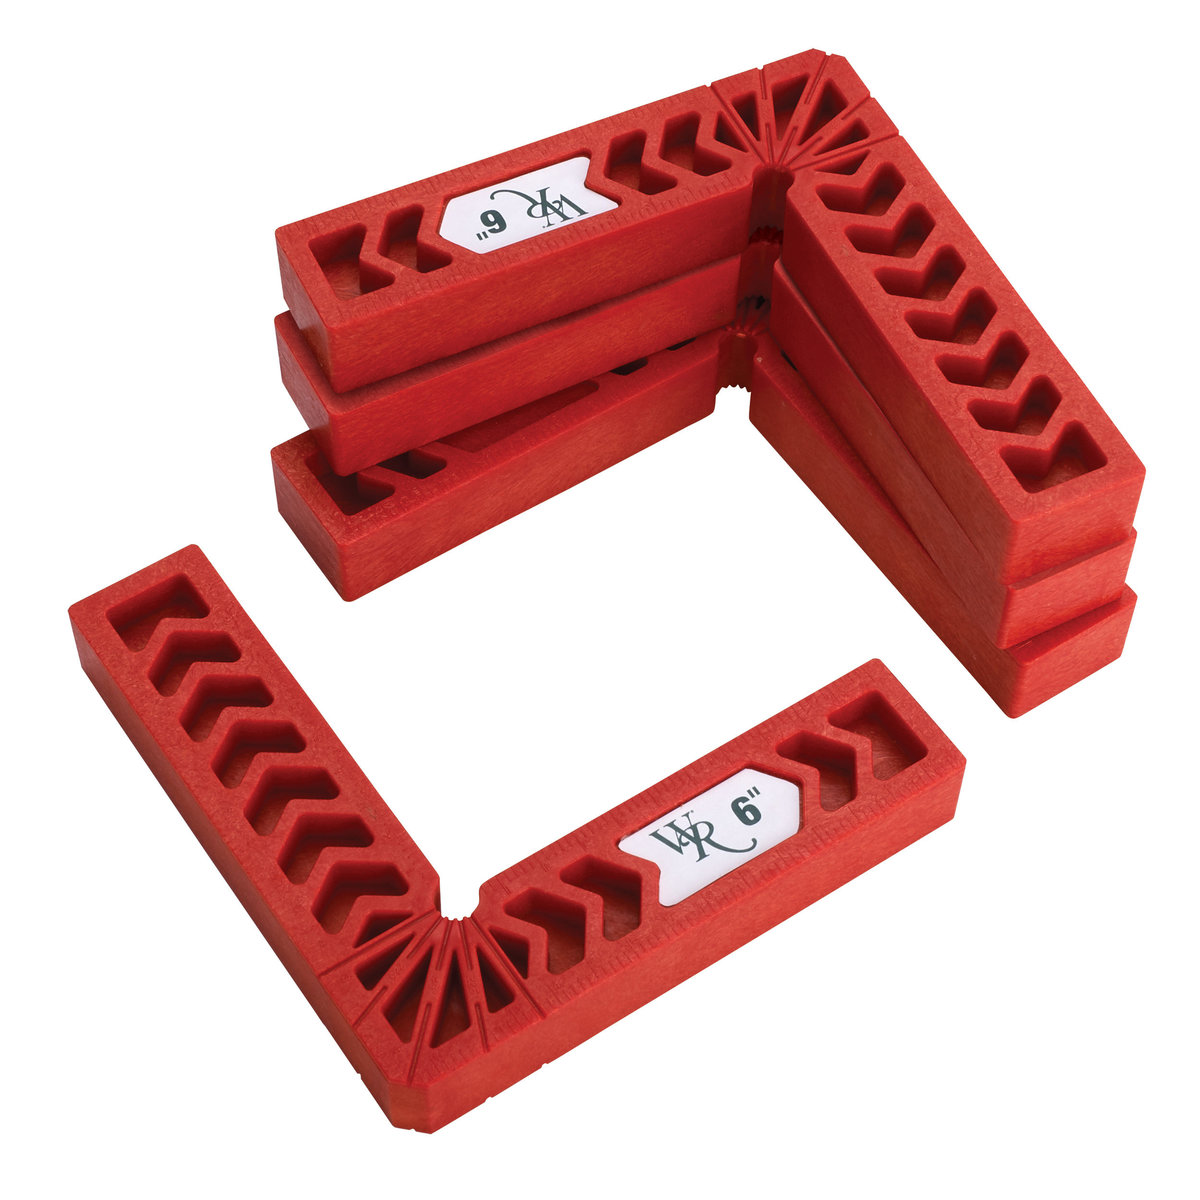 New!! Clamping Square version available